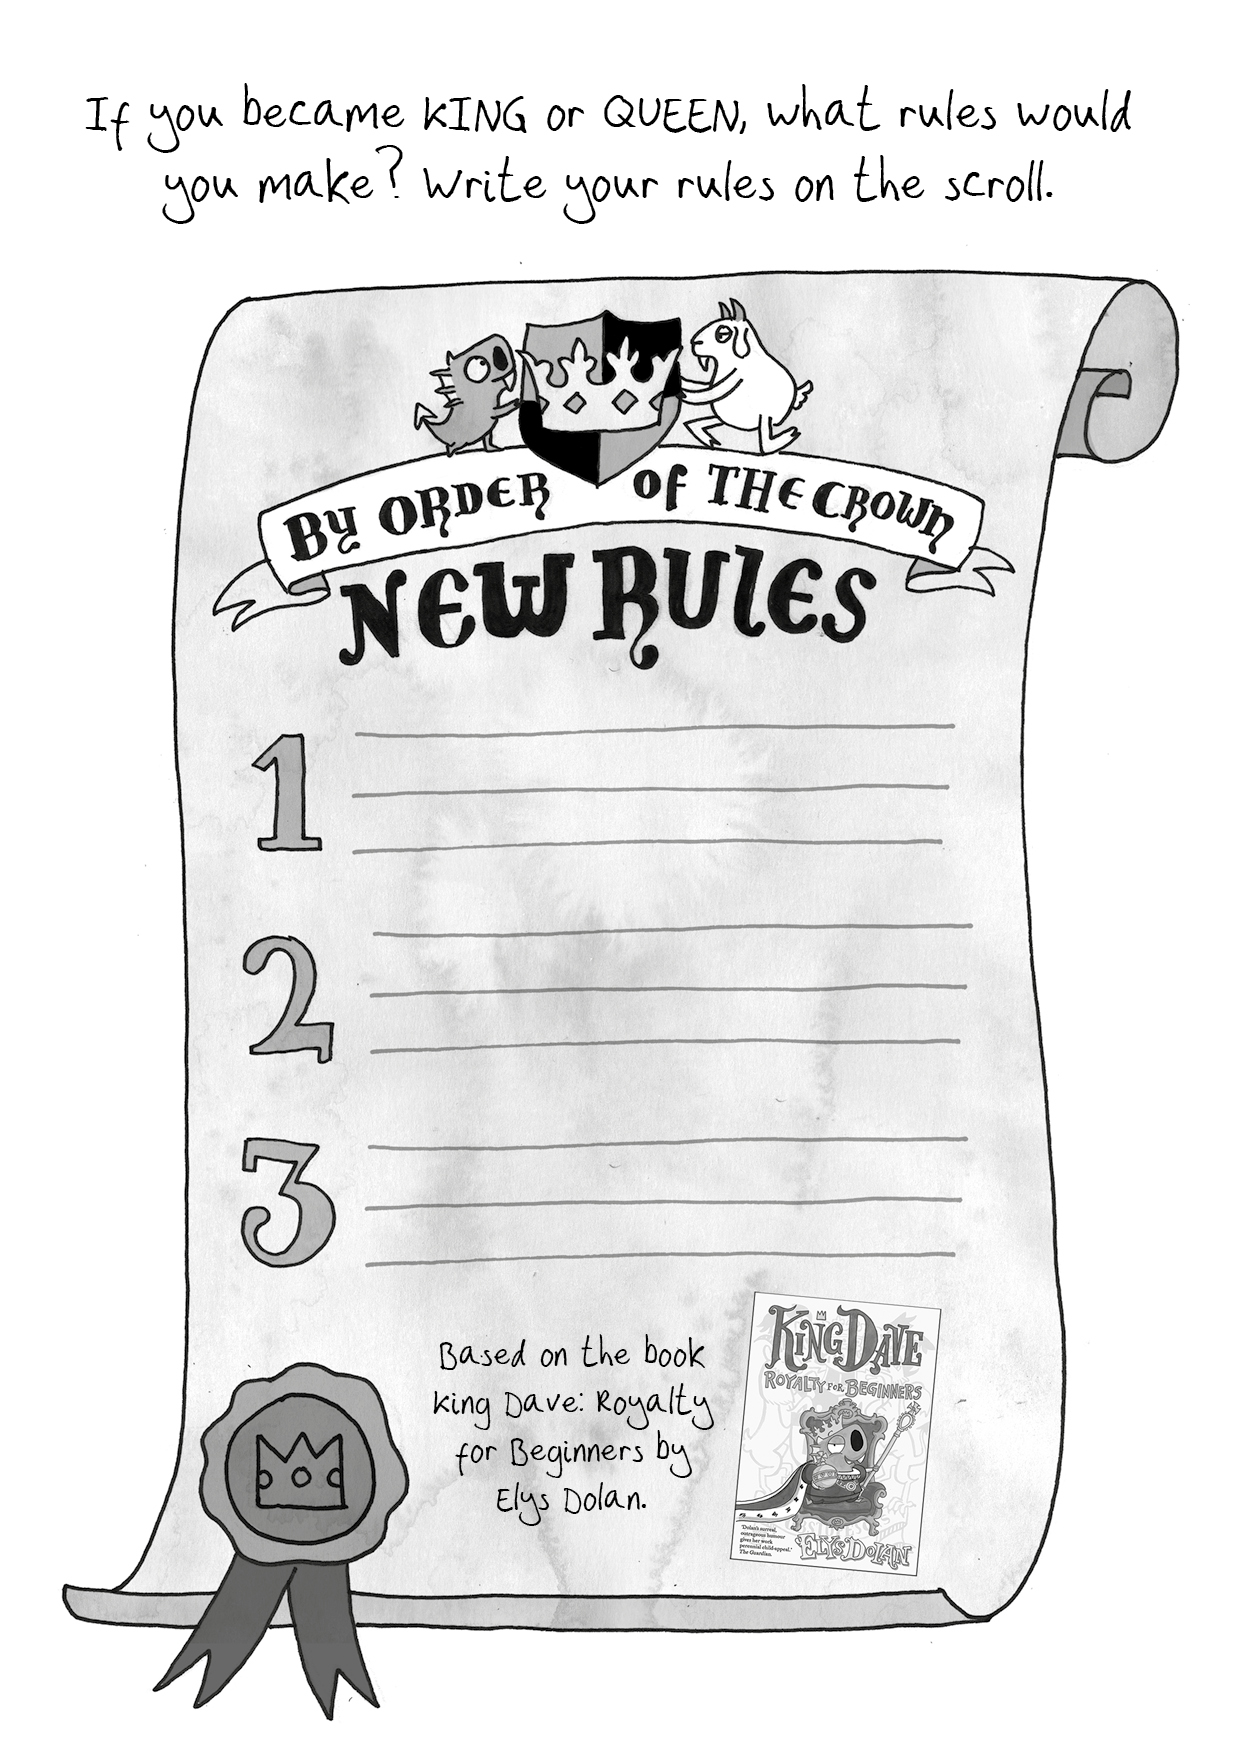 King Dave your rules activity sheet.jpg